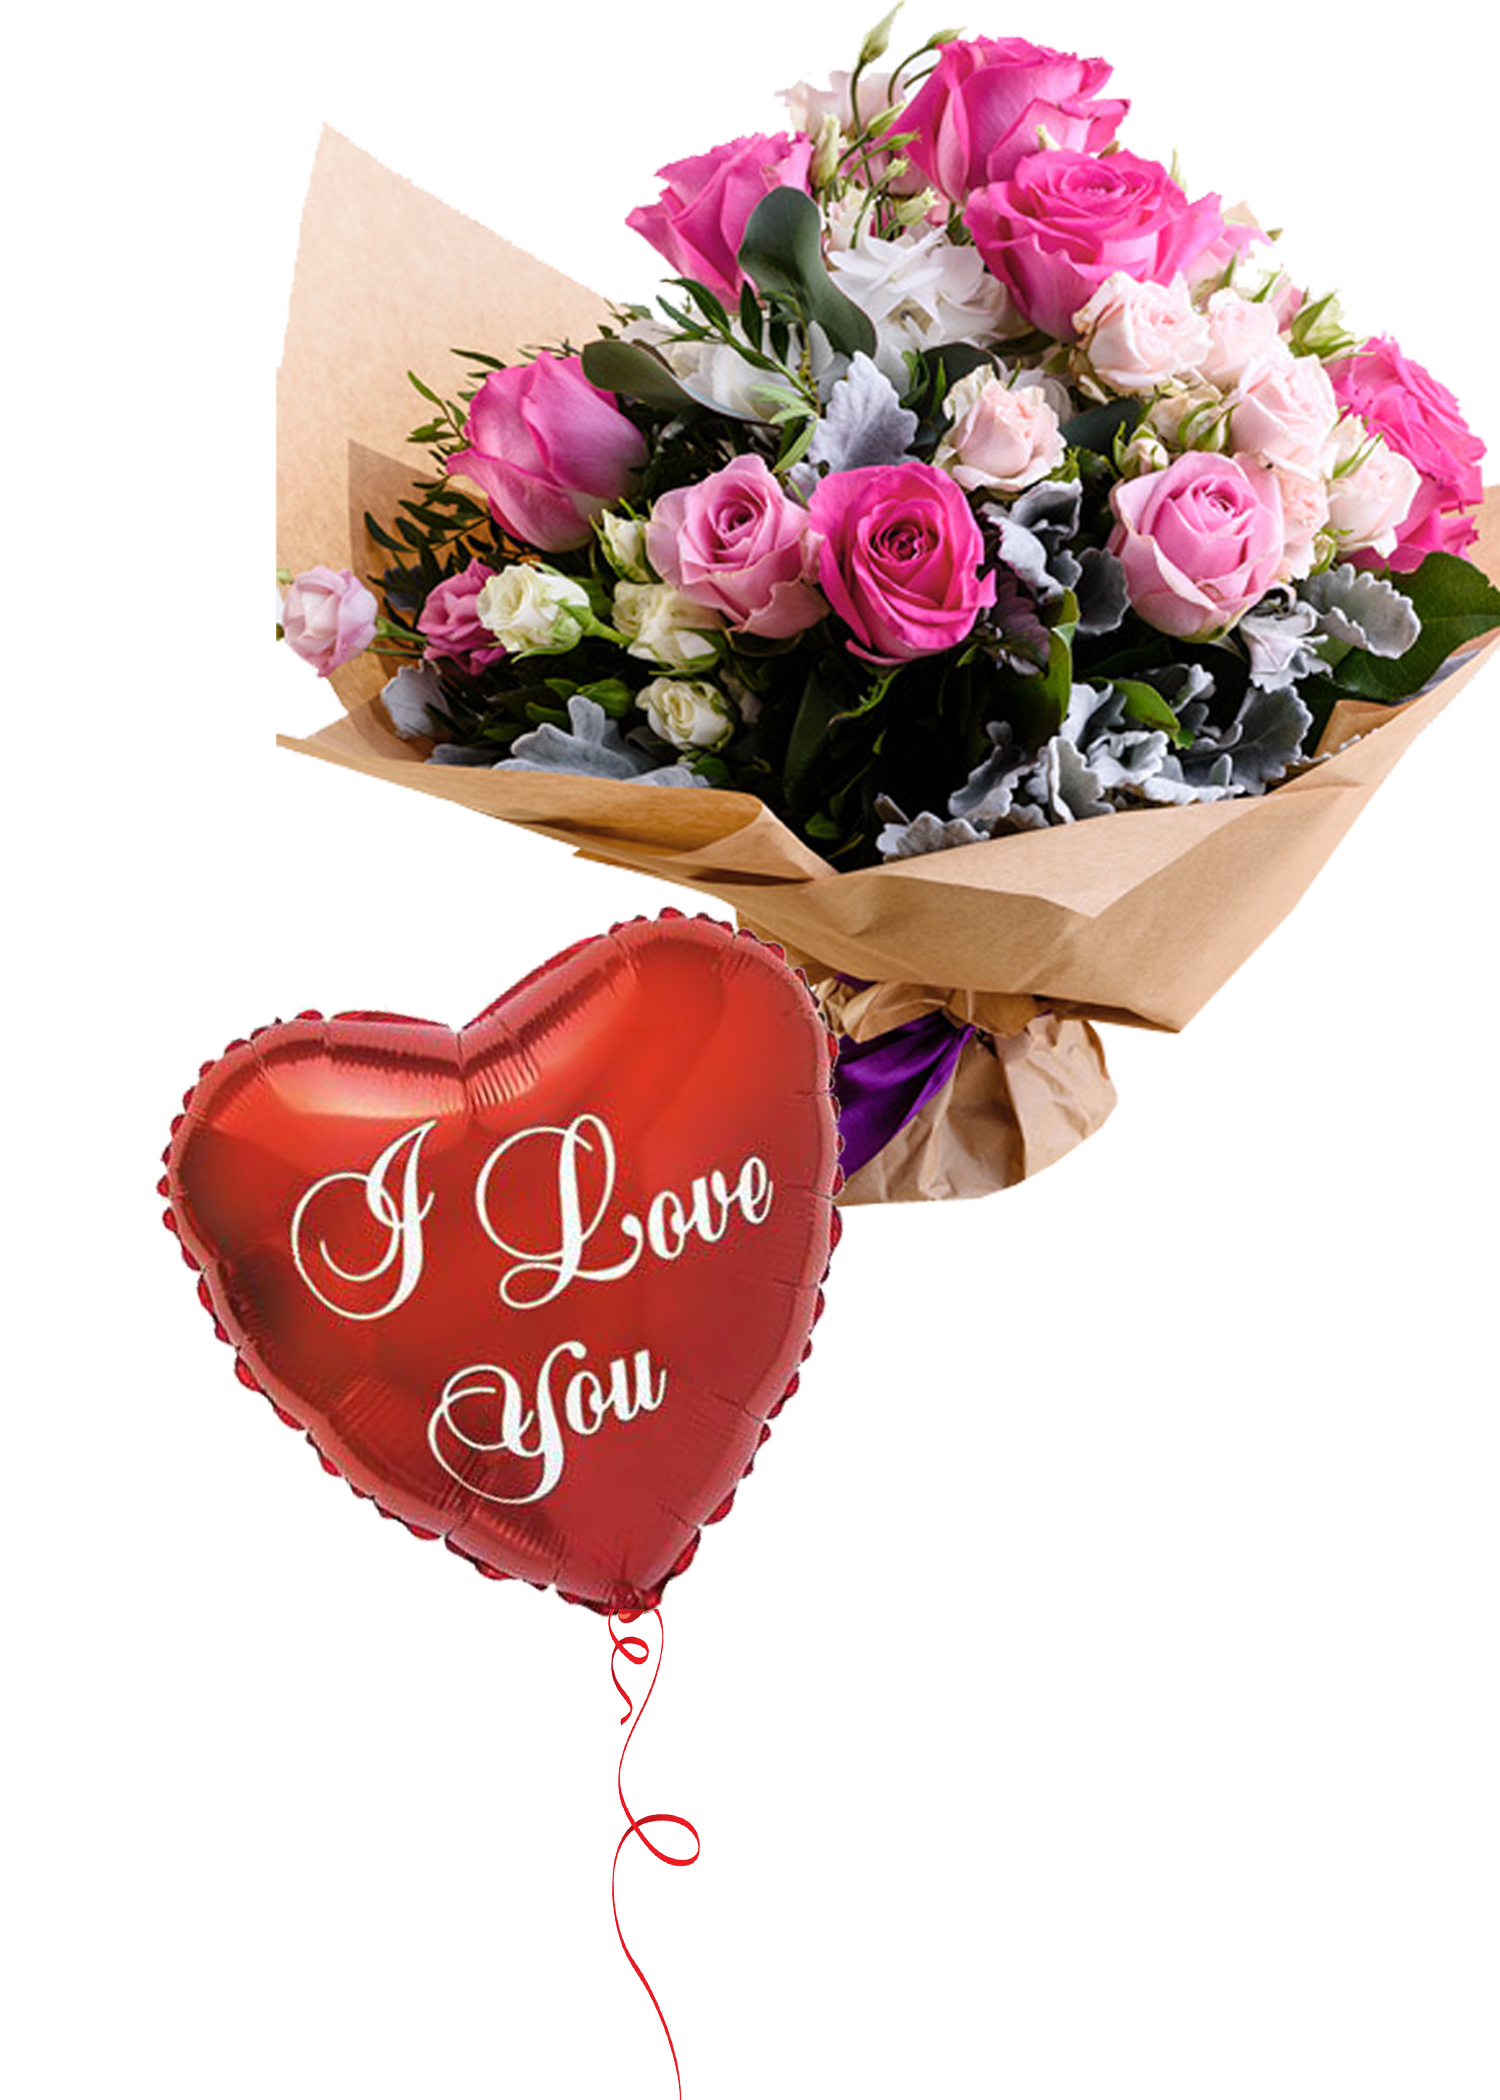 Precious floral bouquet flower delivery dubai pinterest precious floral bouquet aed 19000 with free balloons free delivery all izmirmasajfo